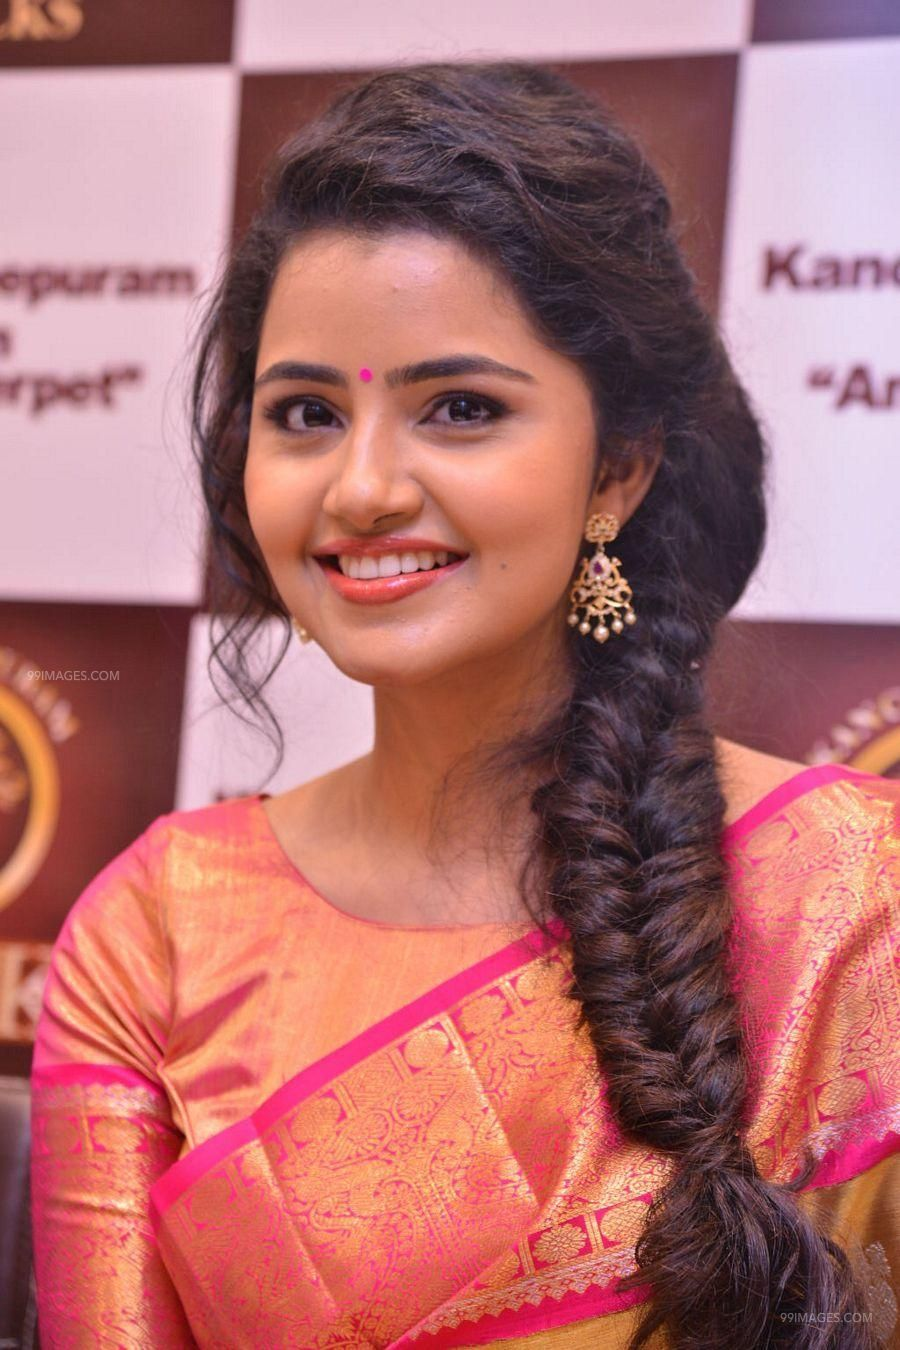 Anupama Parameswaran Hot HD Photos & Mobile Wallpapers (1080p) (anupama parameswaran, mollywood, tollywood, actress, kollywood) (4706) - Anupama Parameswaran